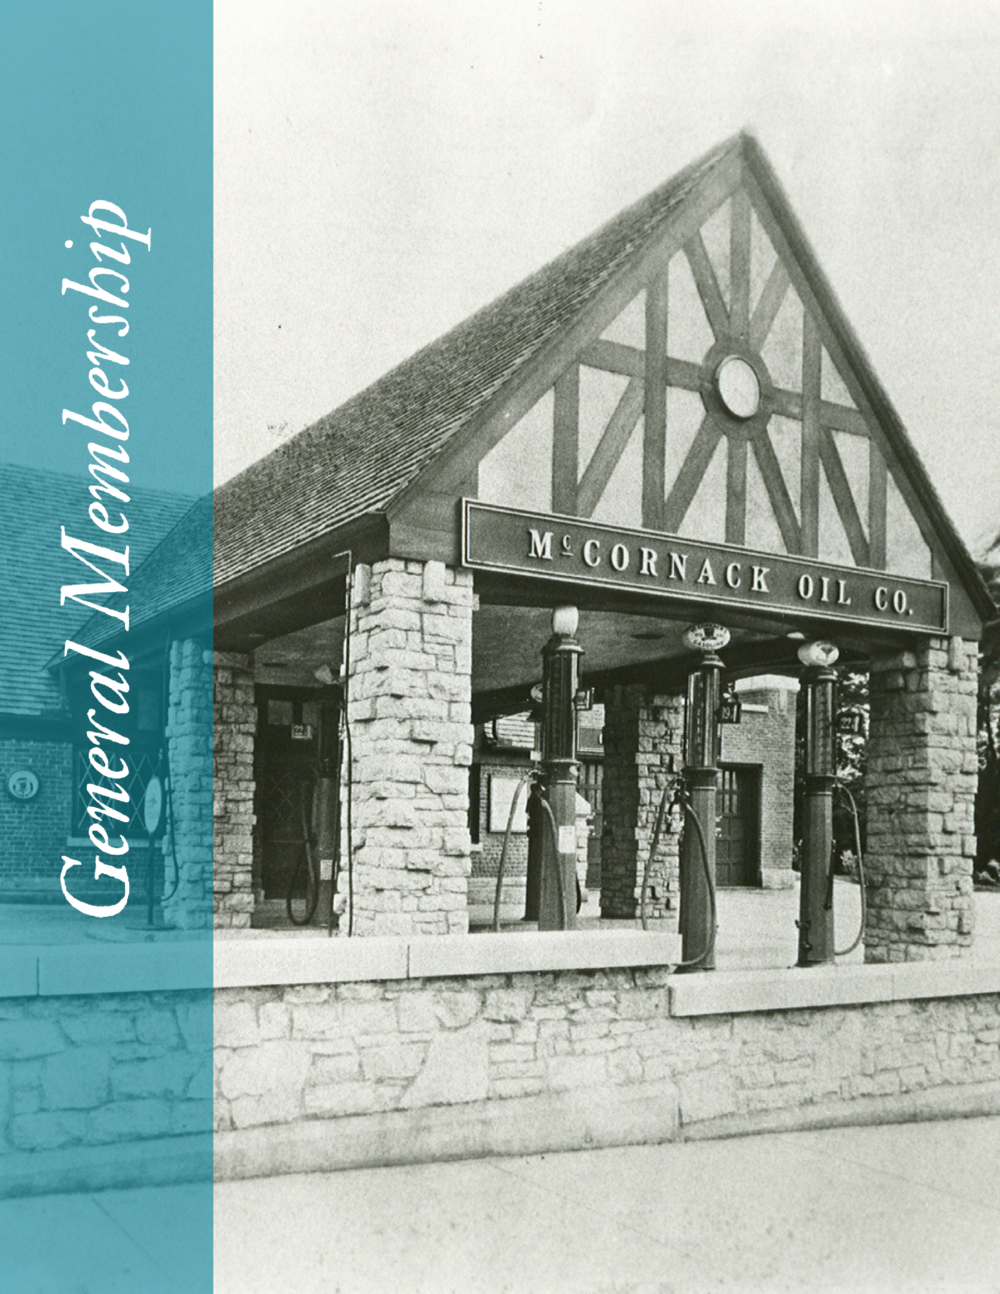 The McCornack Oil Co. Gas Station was the premiere station at the time of its construction in 1927. The gas station became the corporate headquarters for McCornack Oil Co. and was open for operation on Christmas 1928. c.1930s